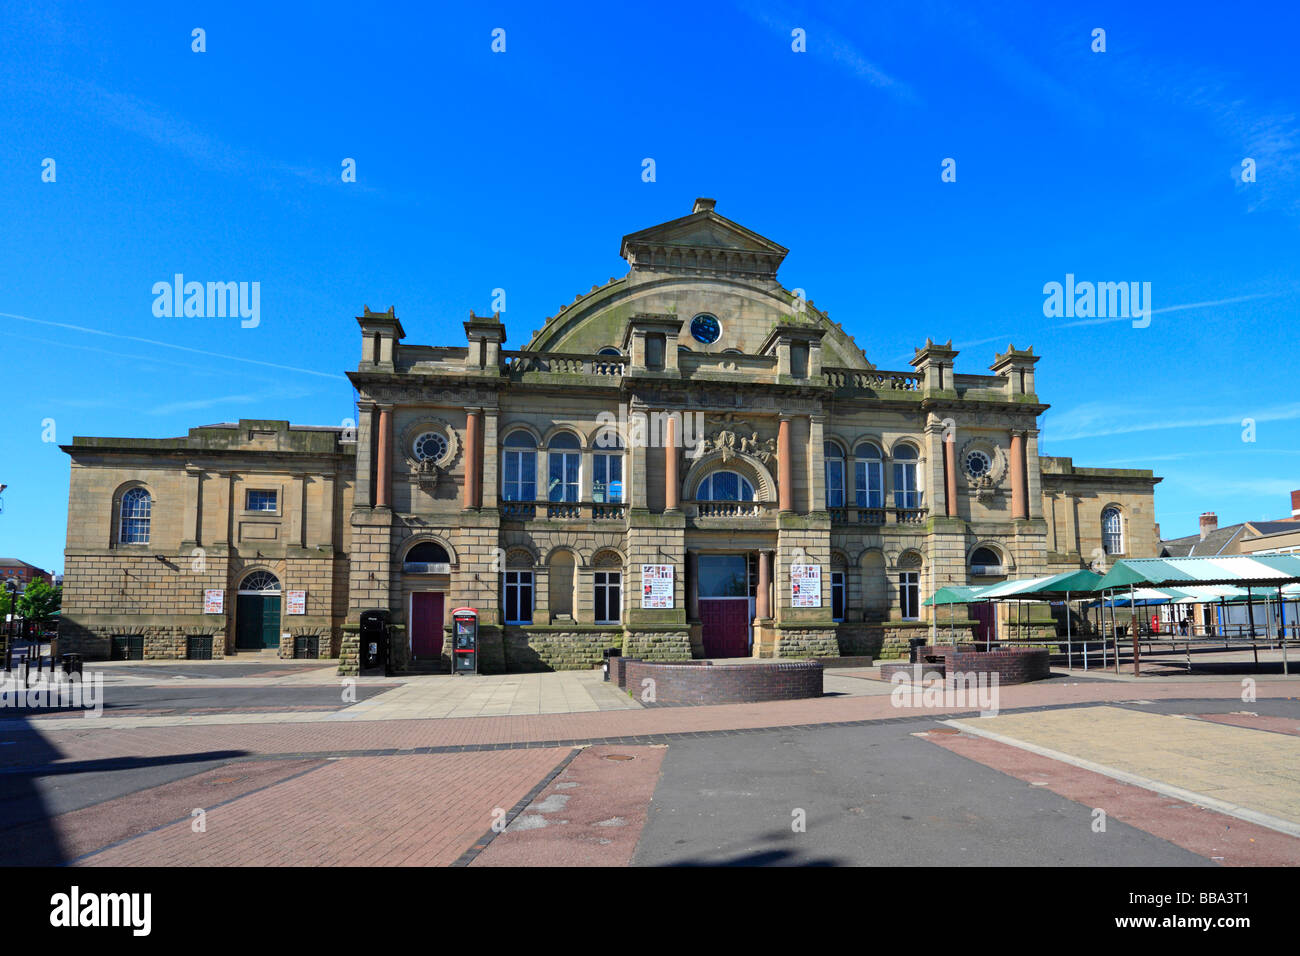 Il Corn Exchange, Doncaster, South Yorkshire, Inghilterra, Regno Unito. Foto Stock